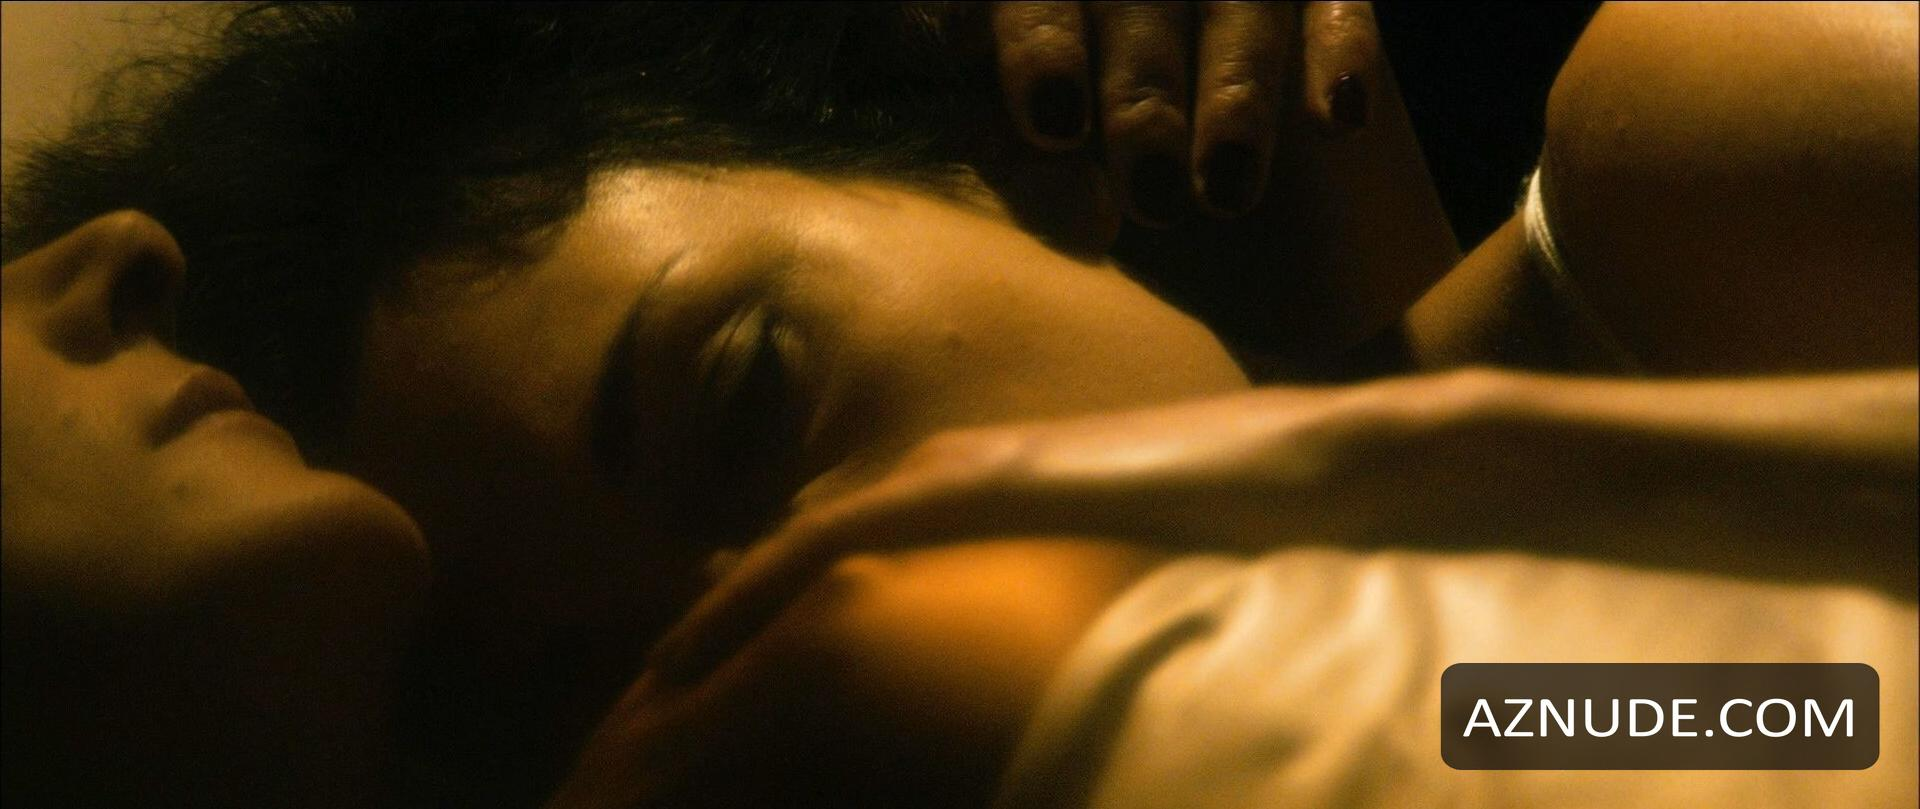 The Duke Of Burgundy Nude Scenes - Aznude-5311